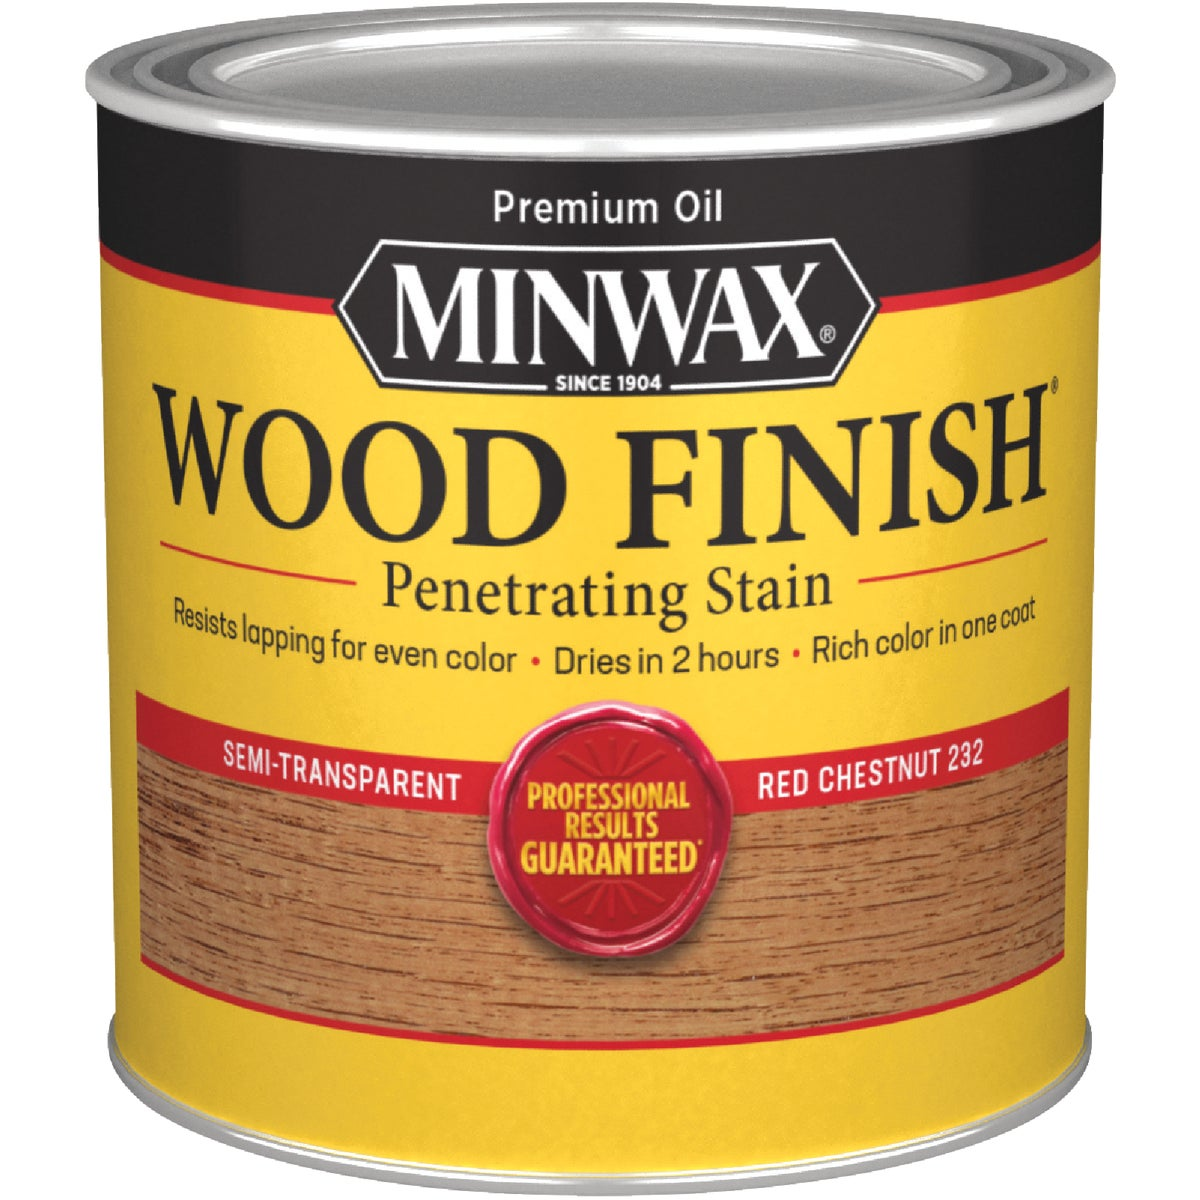 RED CHESTNUT WOOD STAIN - 223204444 by Minwax Company